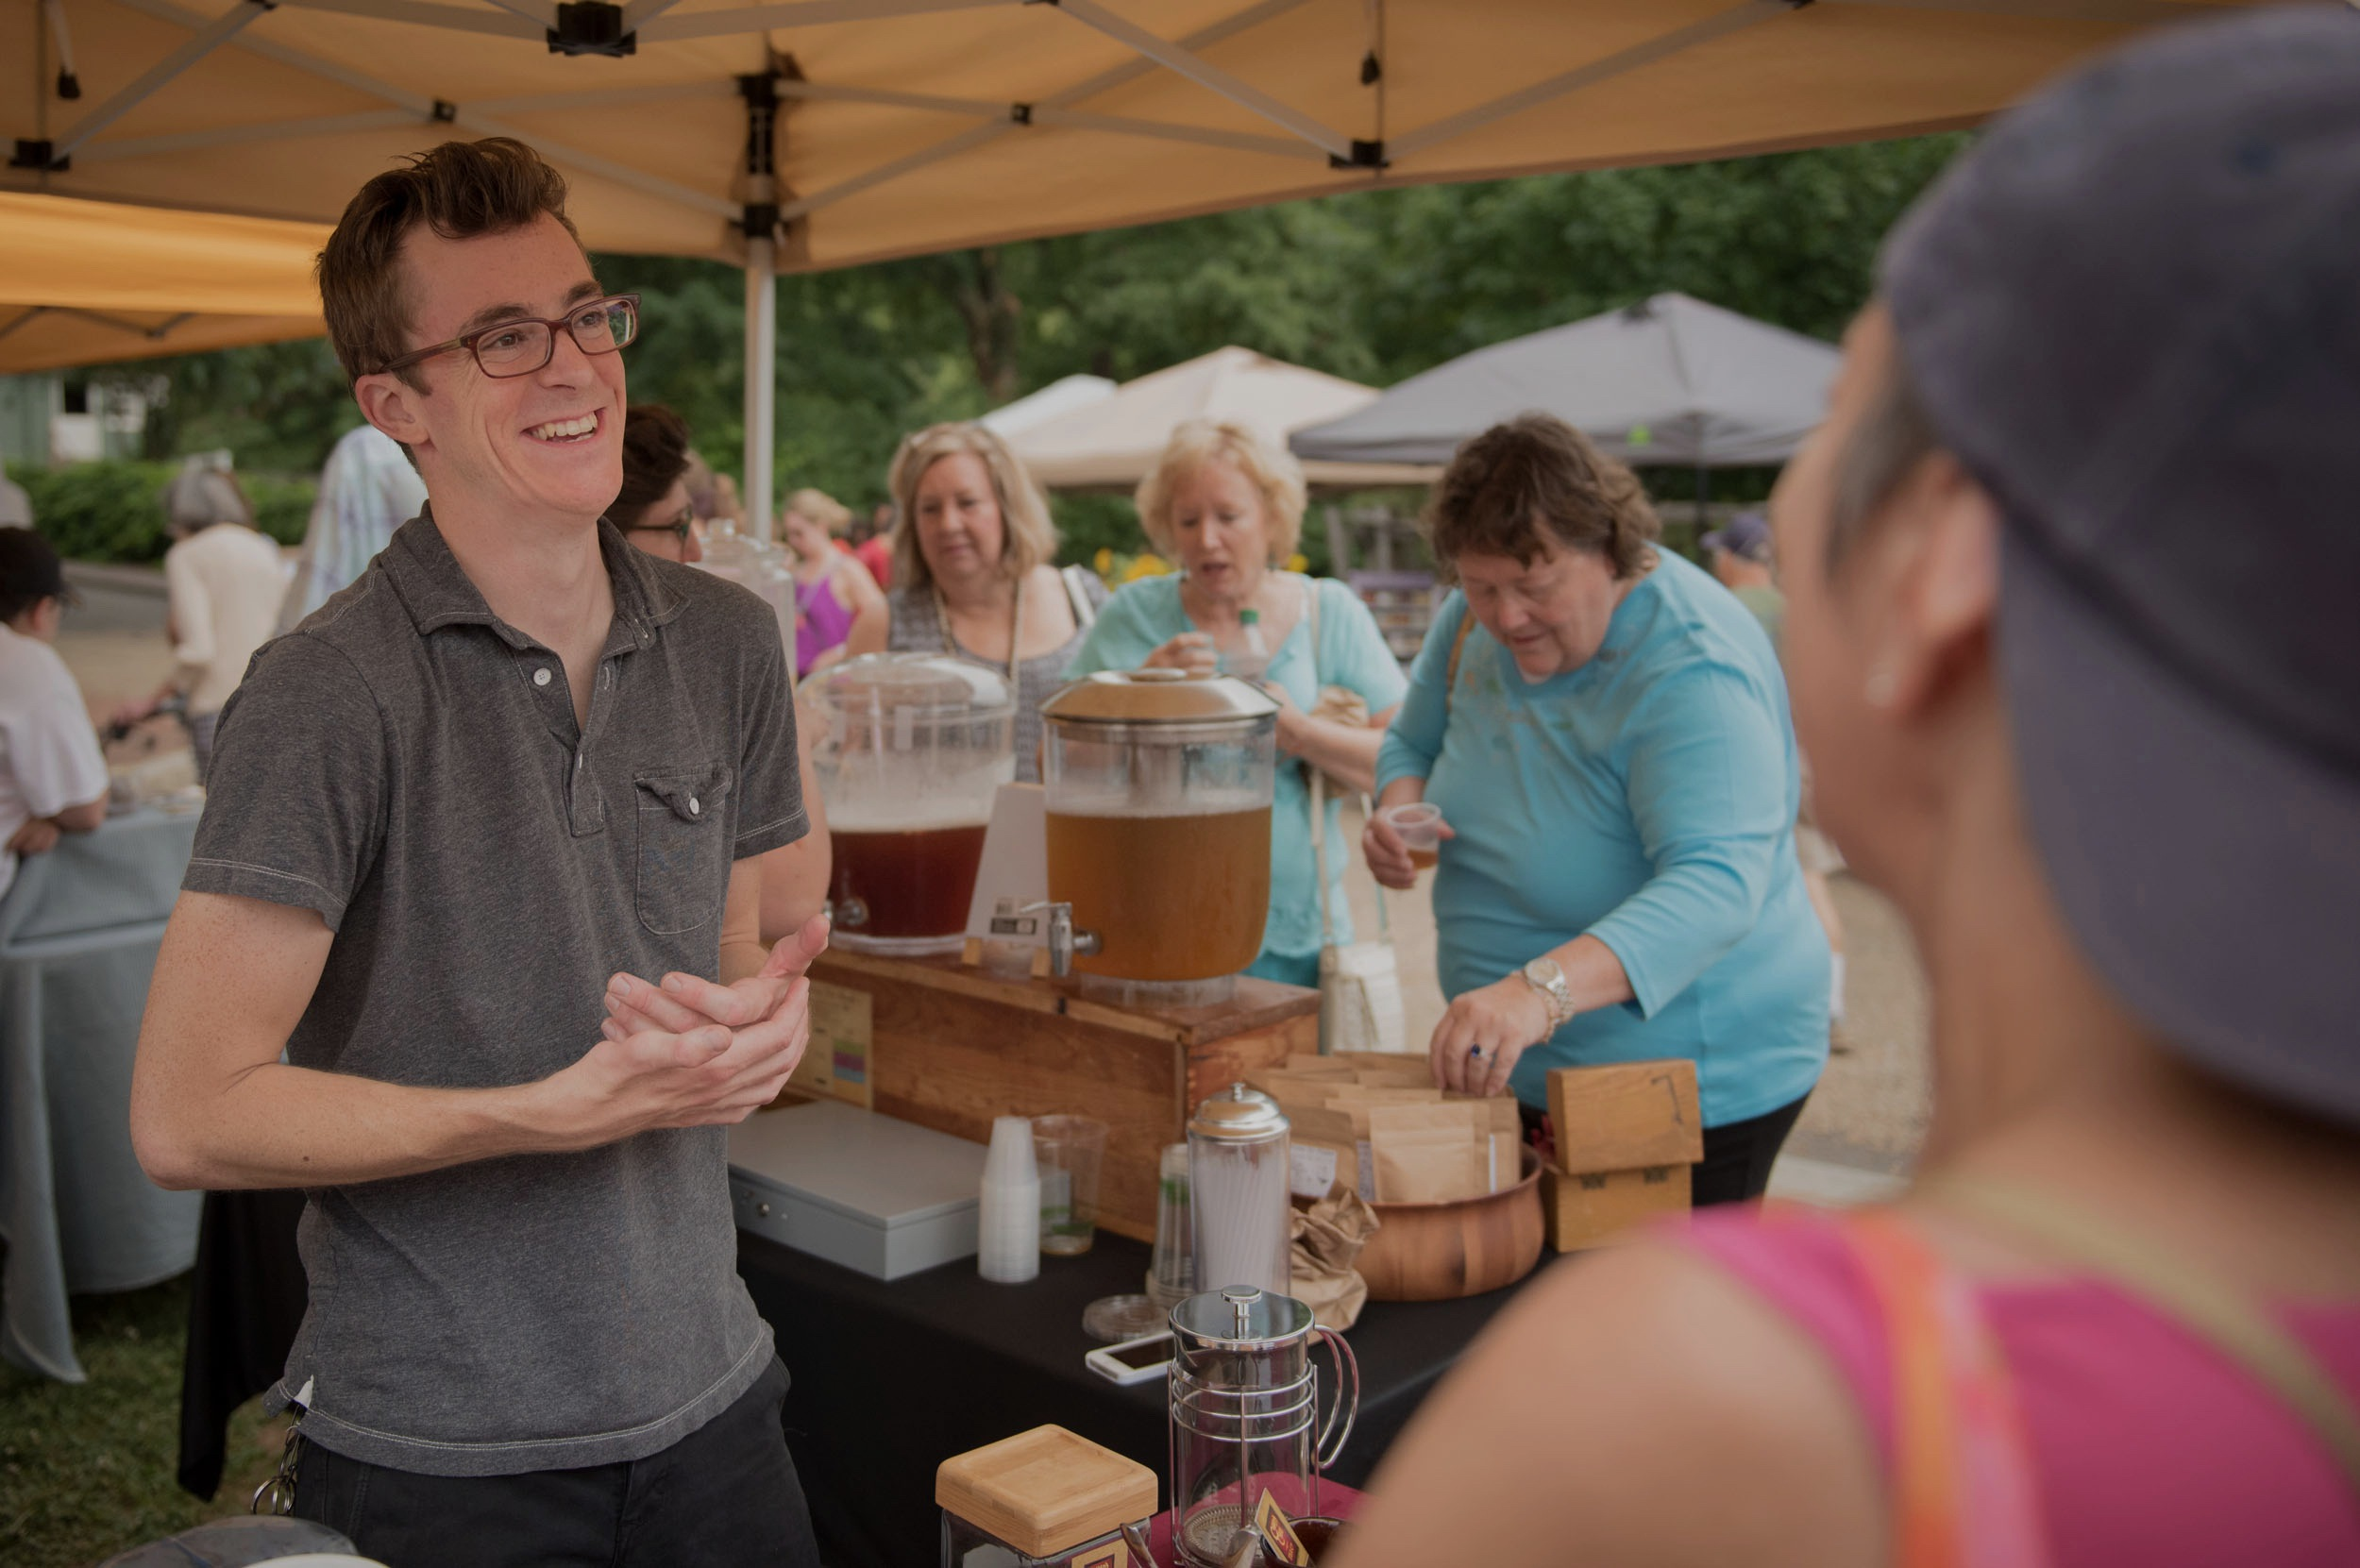 Selling Hot and Cold Tea at Our Local Farmer's Market